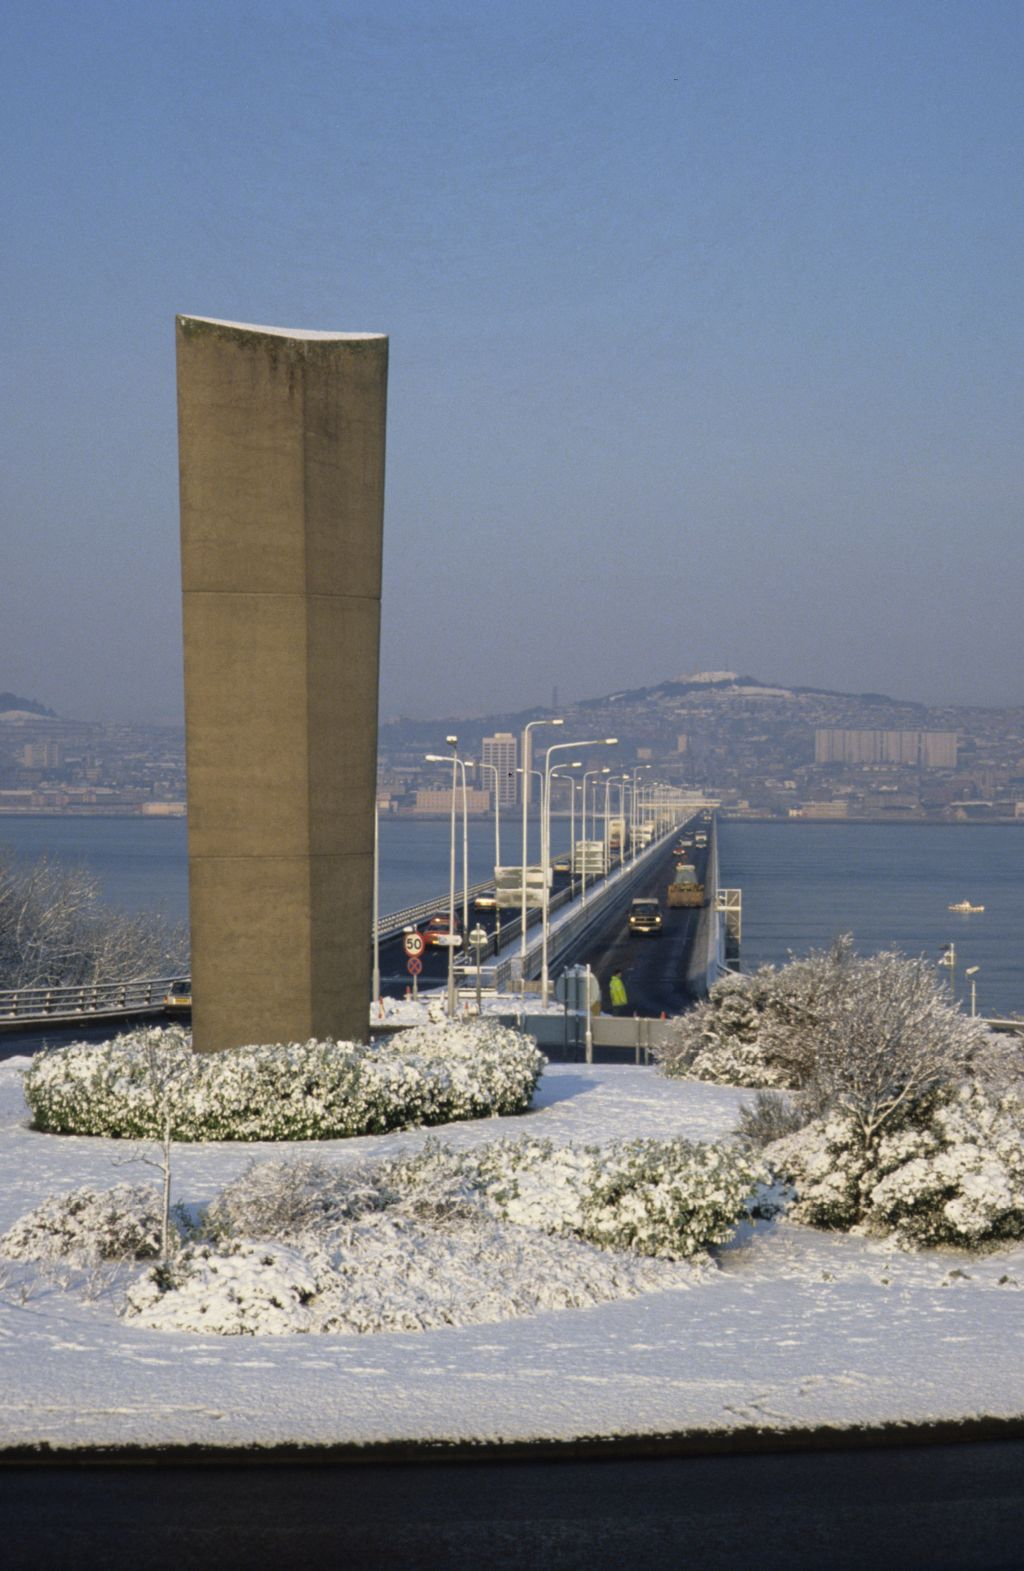 A winter view of the Tay Road Bridge and monument.